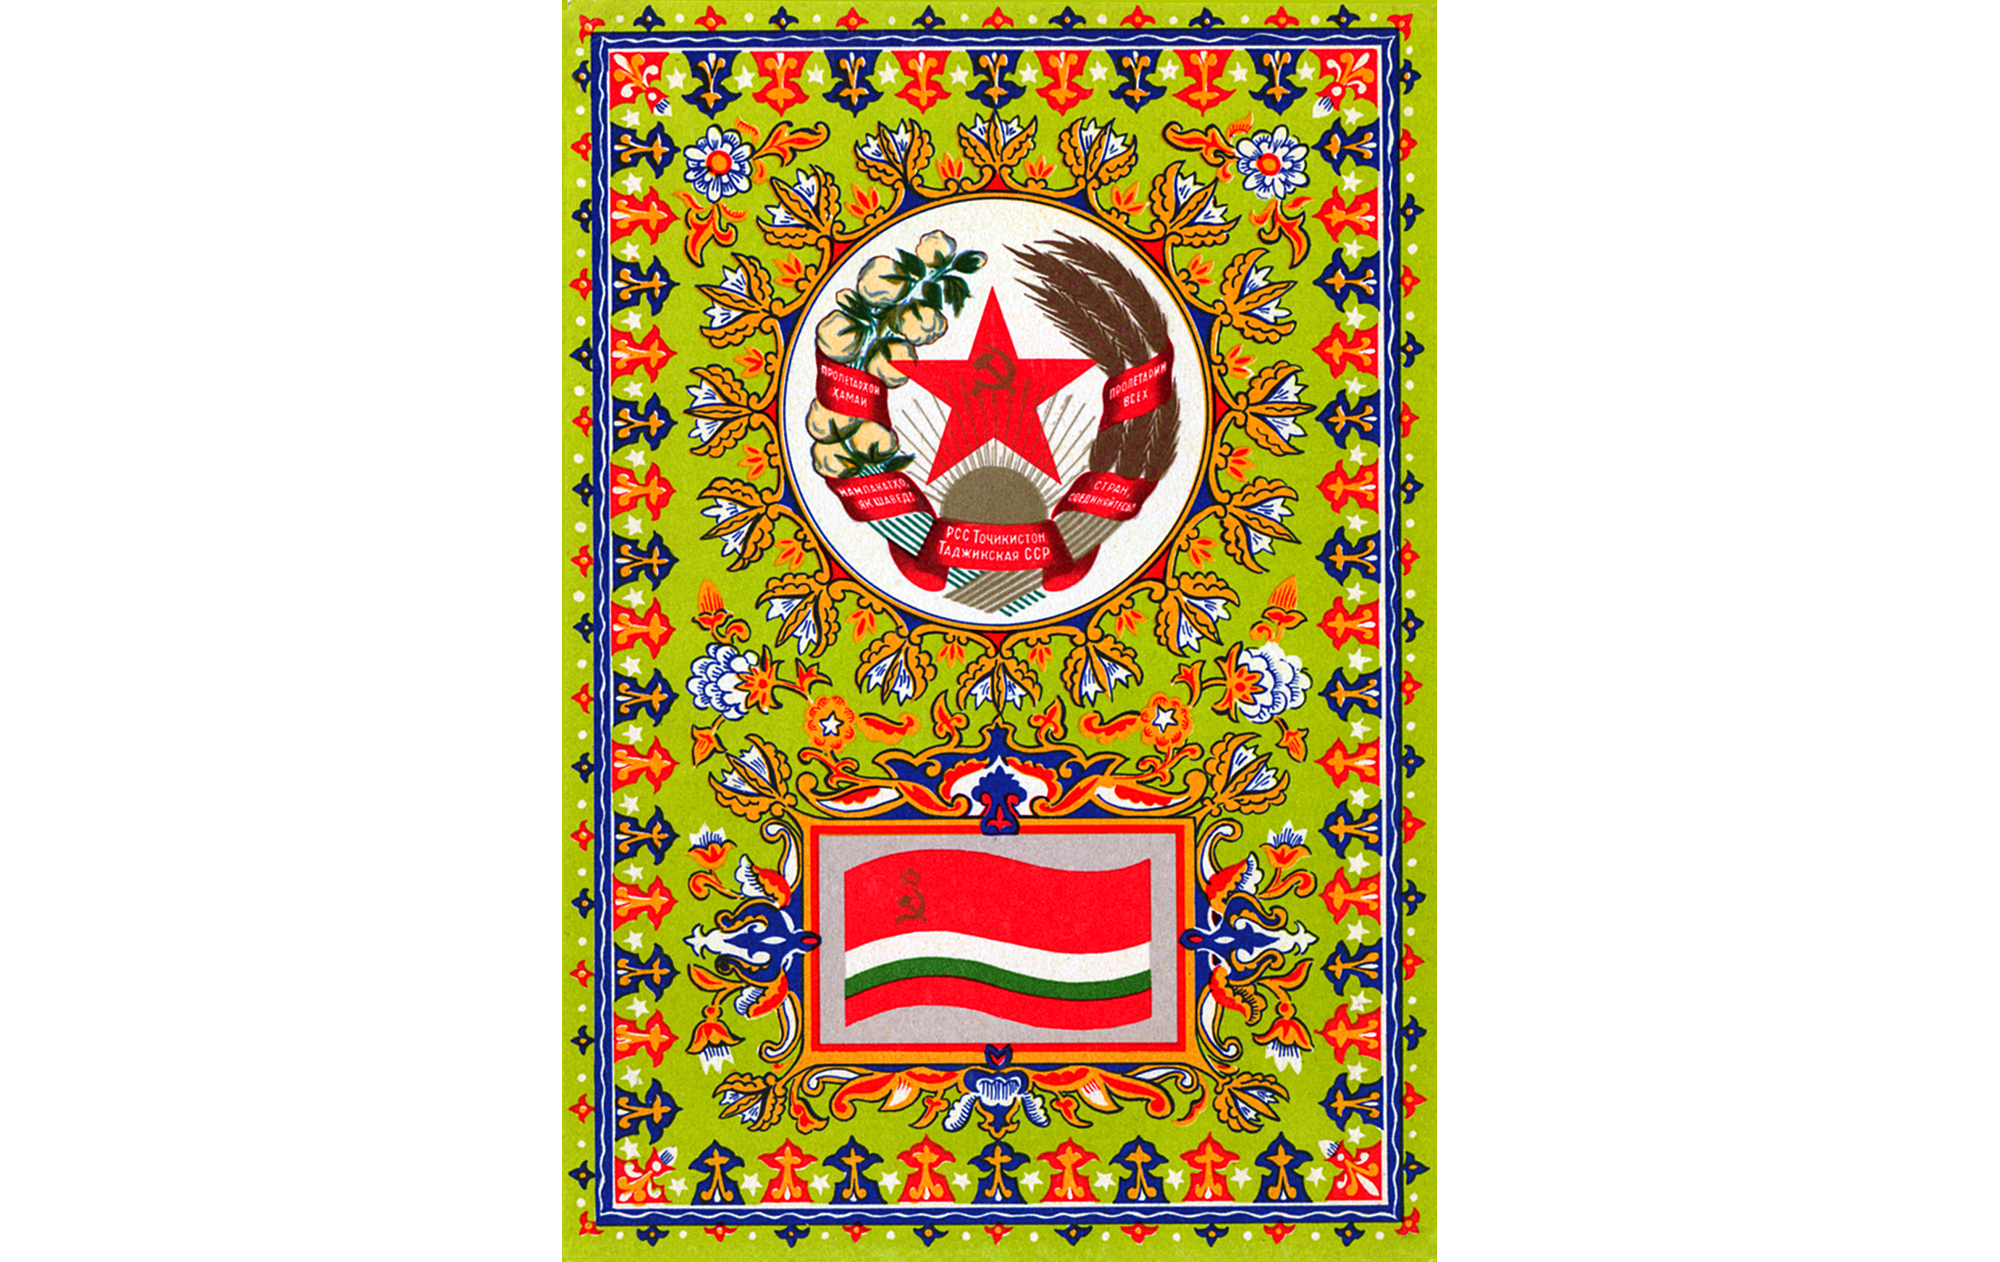 tajikistan-emblem-and-flag-thumb-aimsc-110